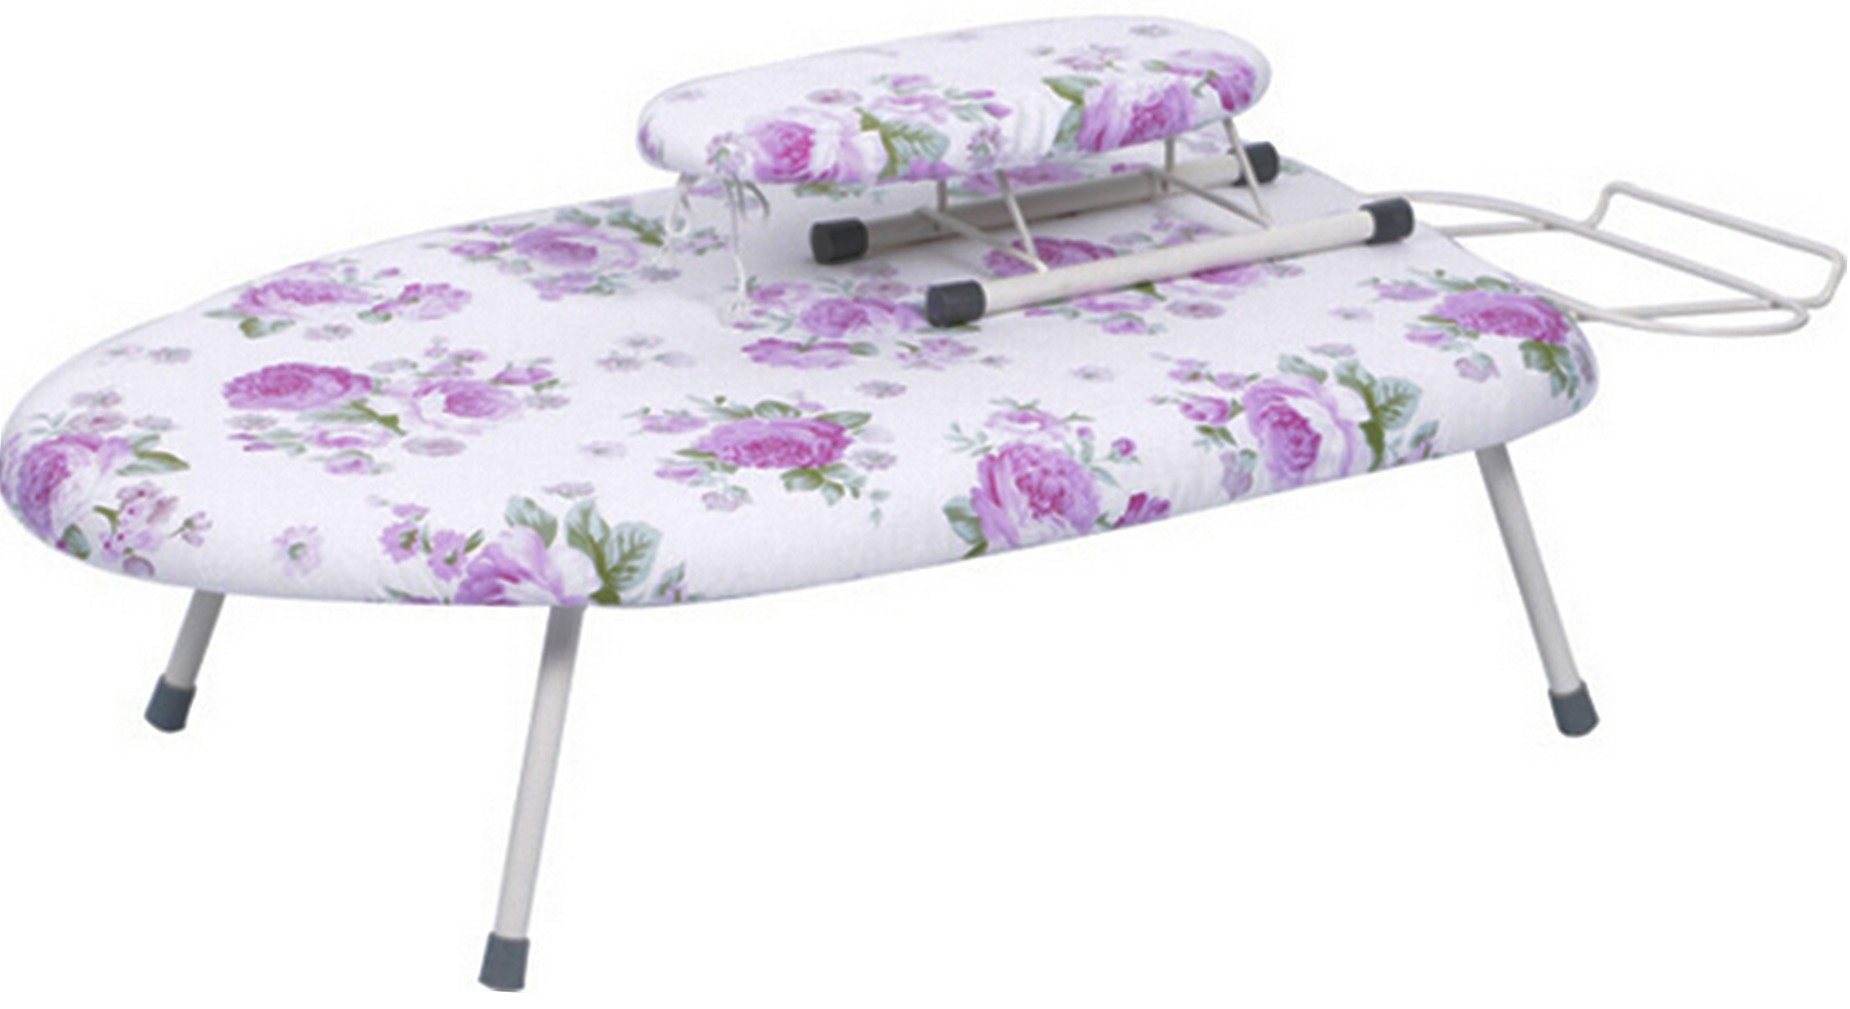 Mini Tabletop Ironing Board Blue with Folding Legs with Ironing Board for Sleeve